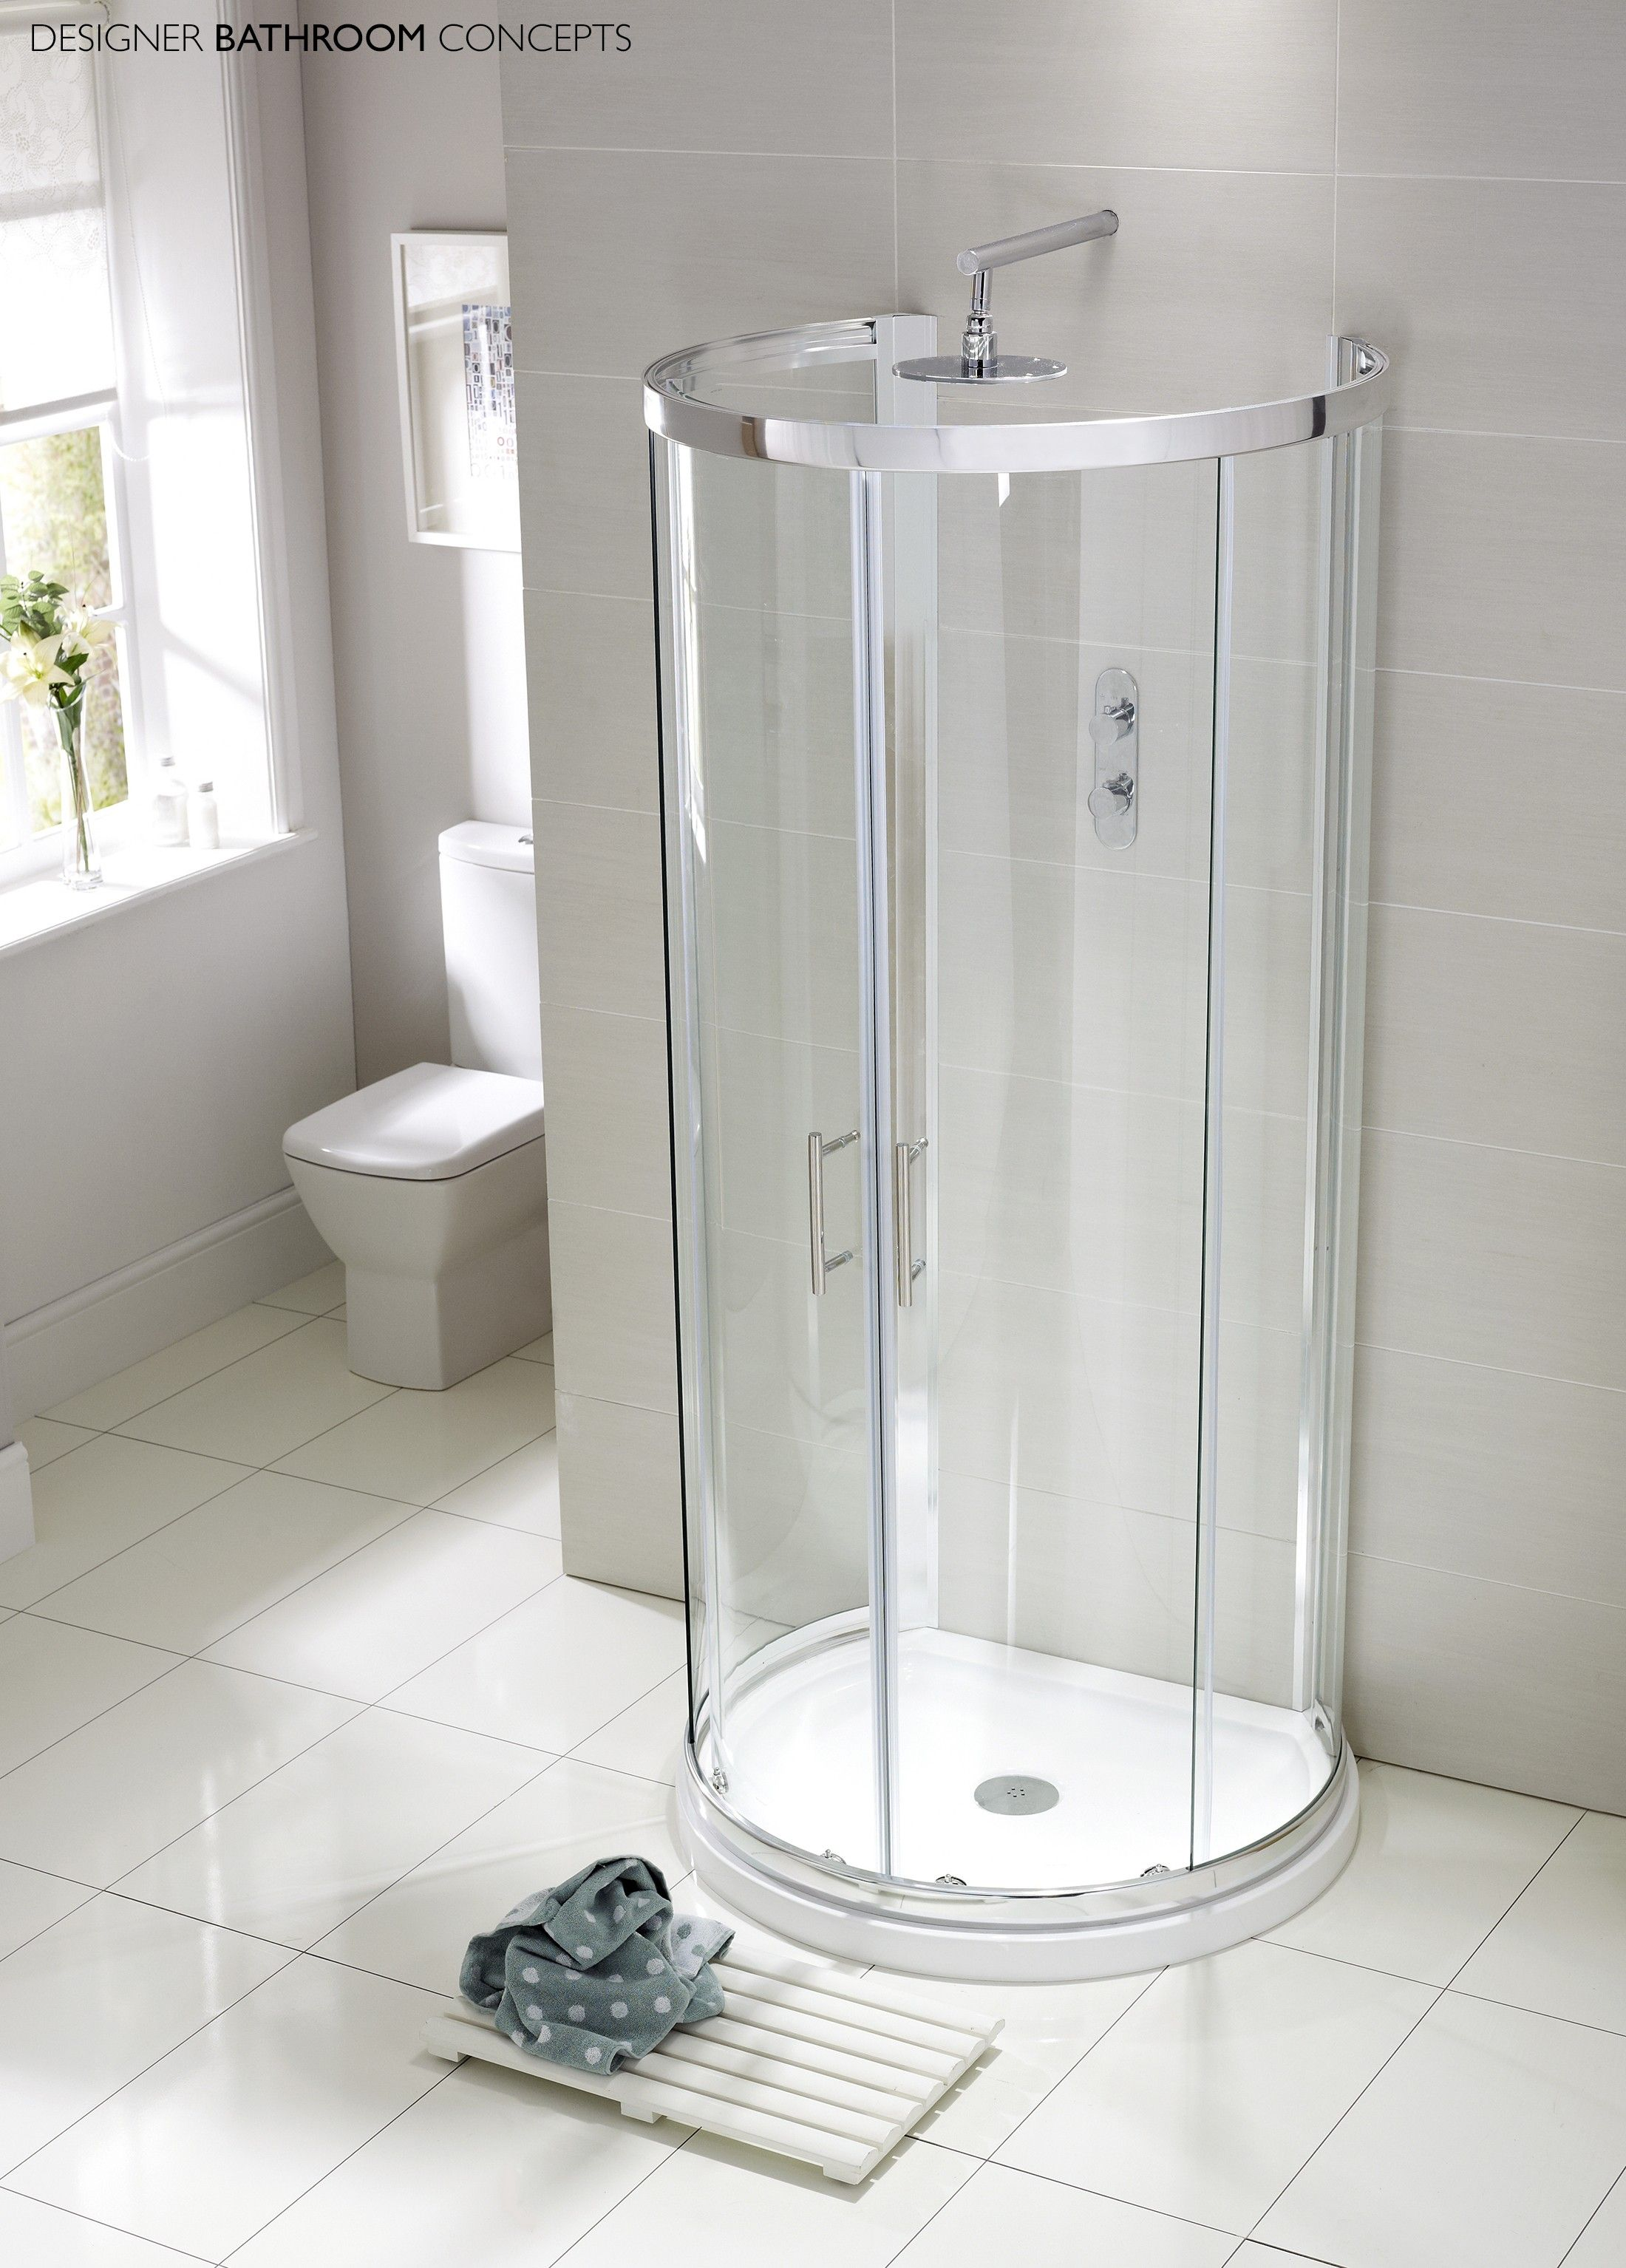 Aquaglass Designer D Shaped Quadrant Shower Enclosure - Main Image ...